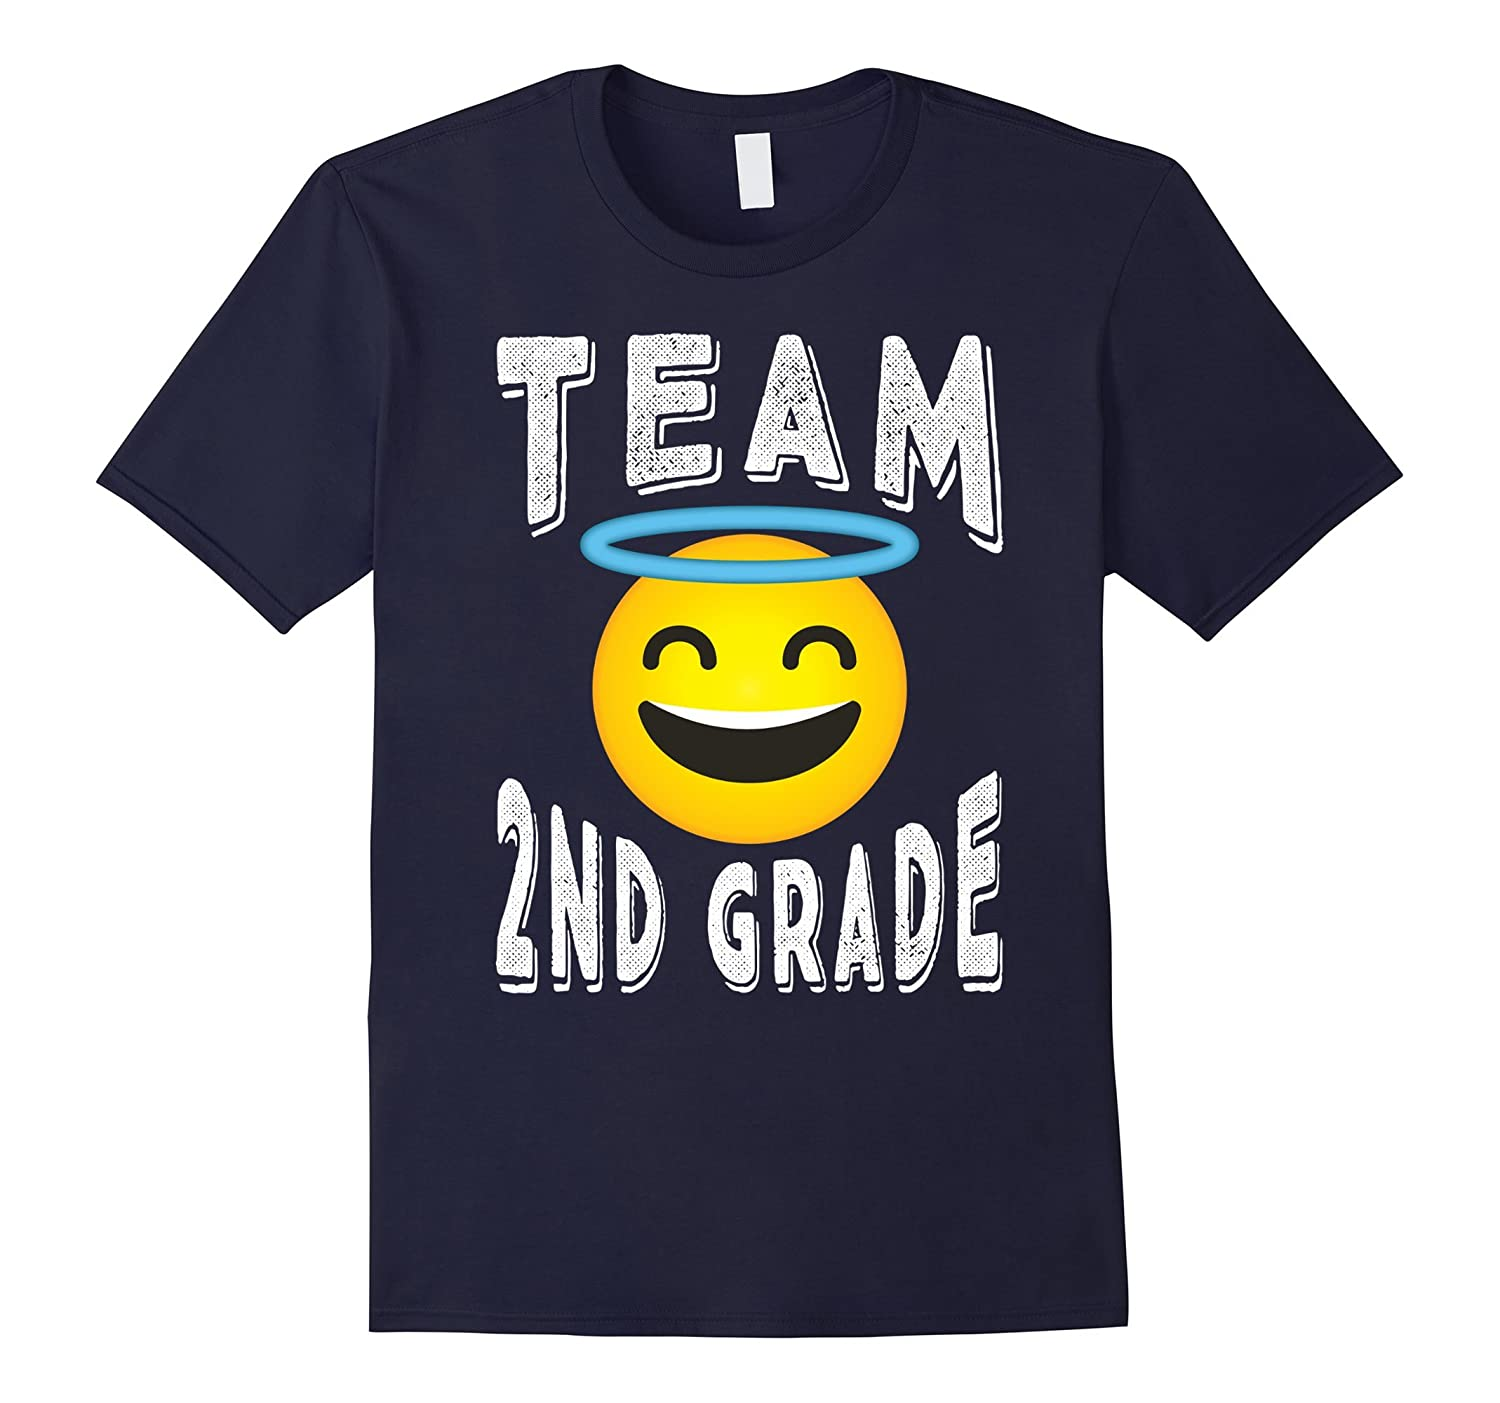 2nd Grade Teacher Shirt - Angel Emoji Team 2nd Grade T-shirt-Rose